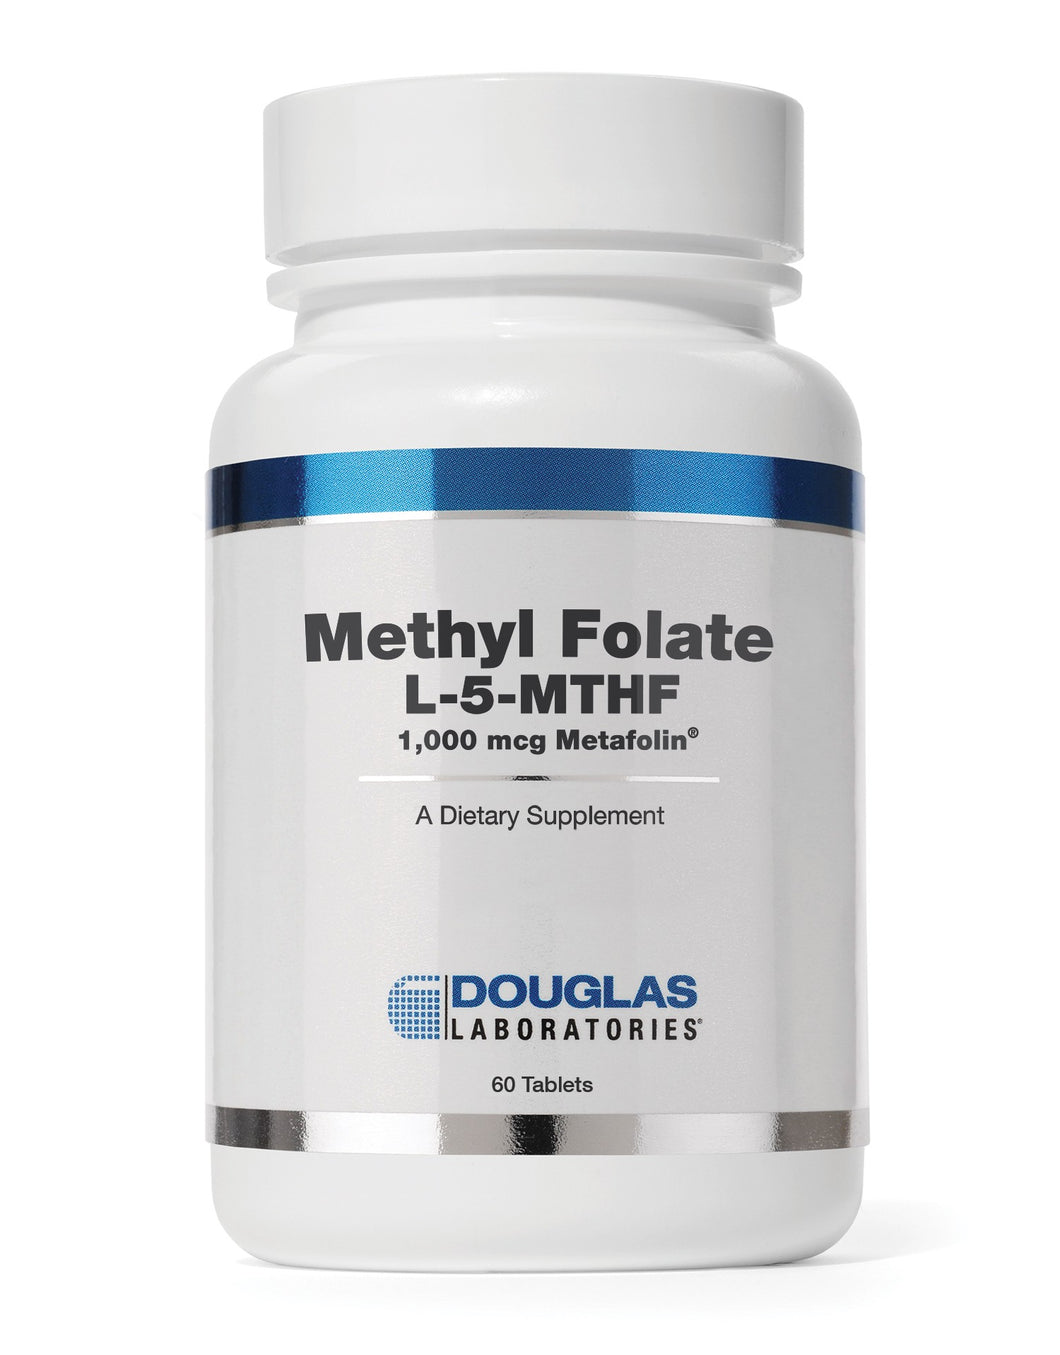 METHYL FOLATE Tablet 60 Tablets Douglas Laboratories